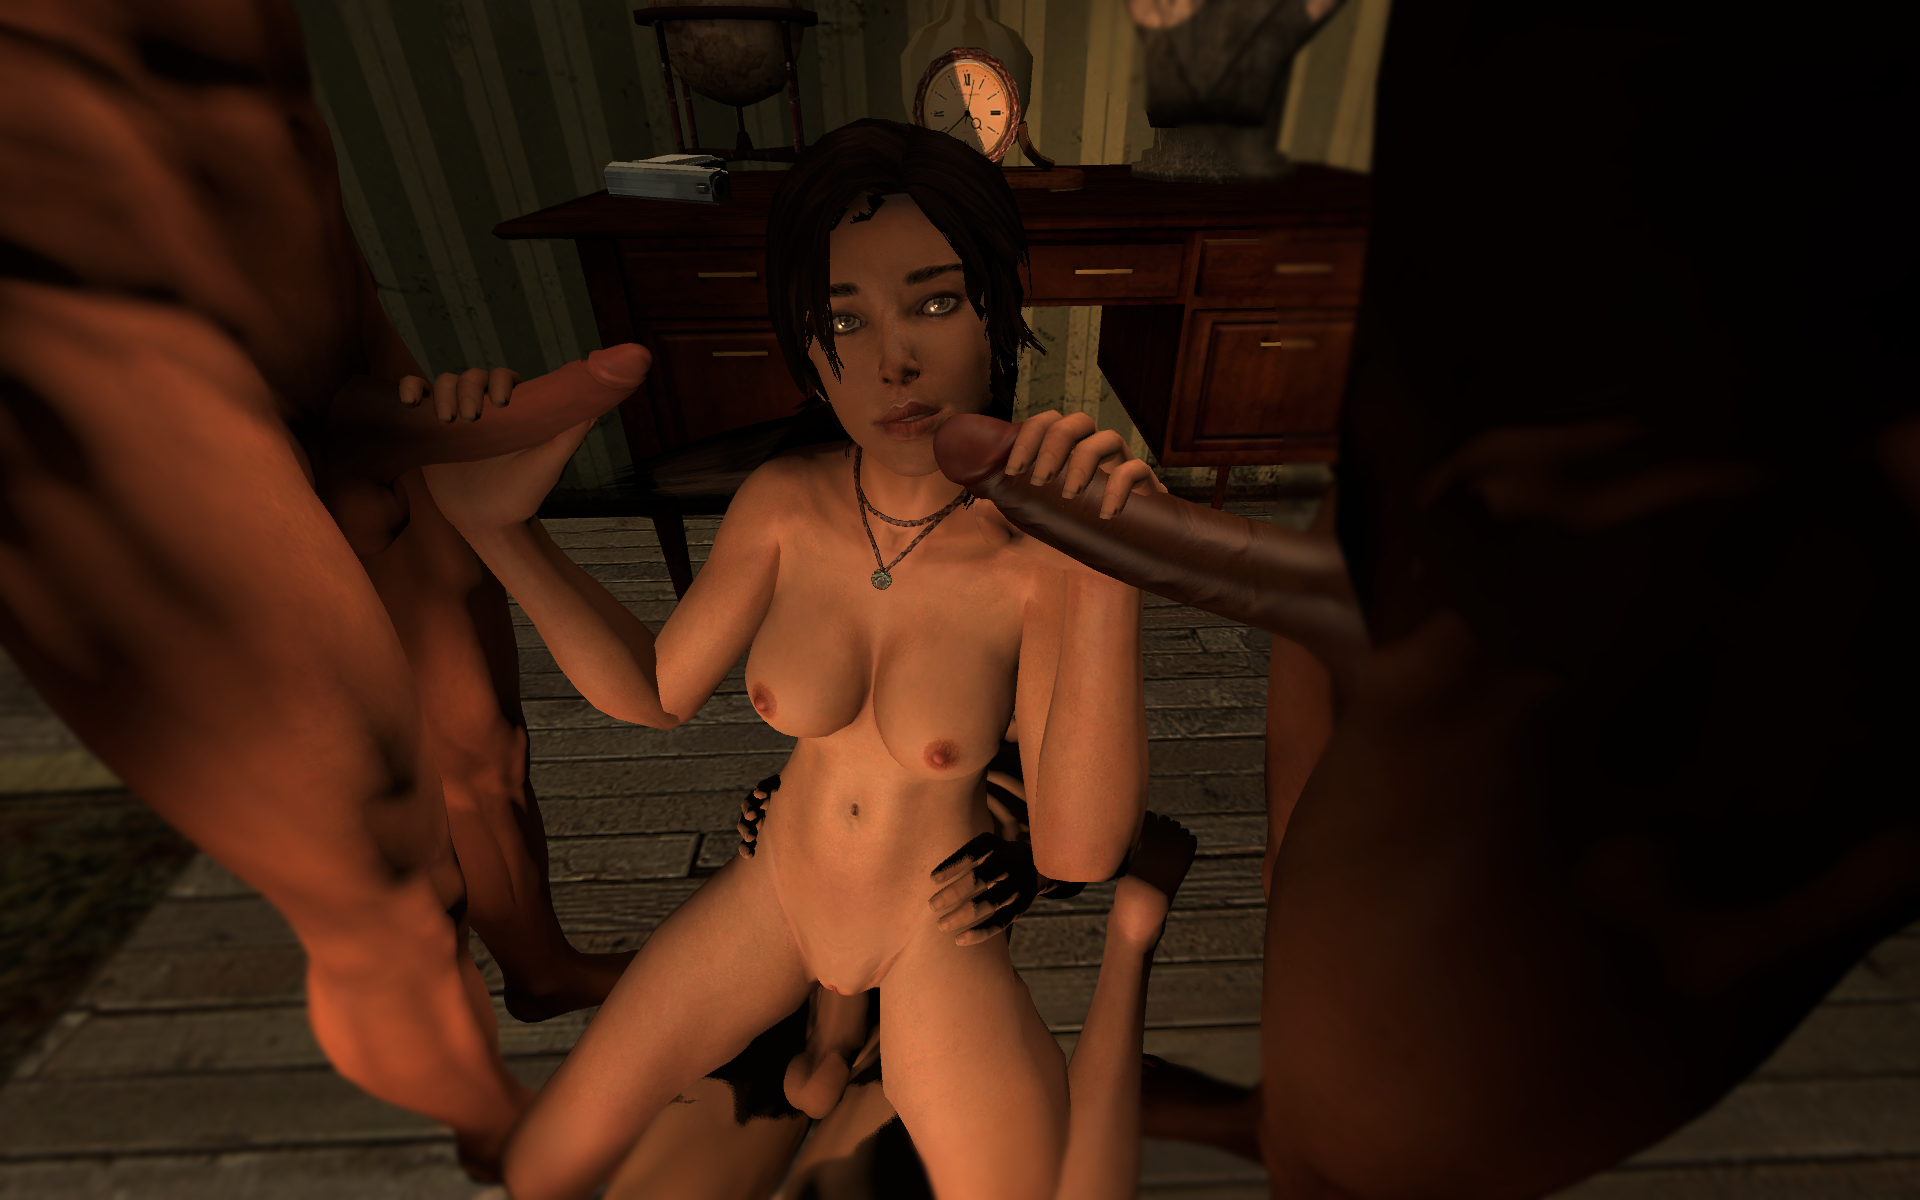 Tomb raider 9 origins nude patch naked movies